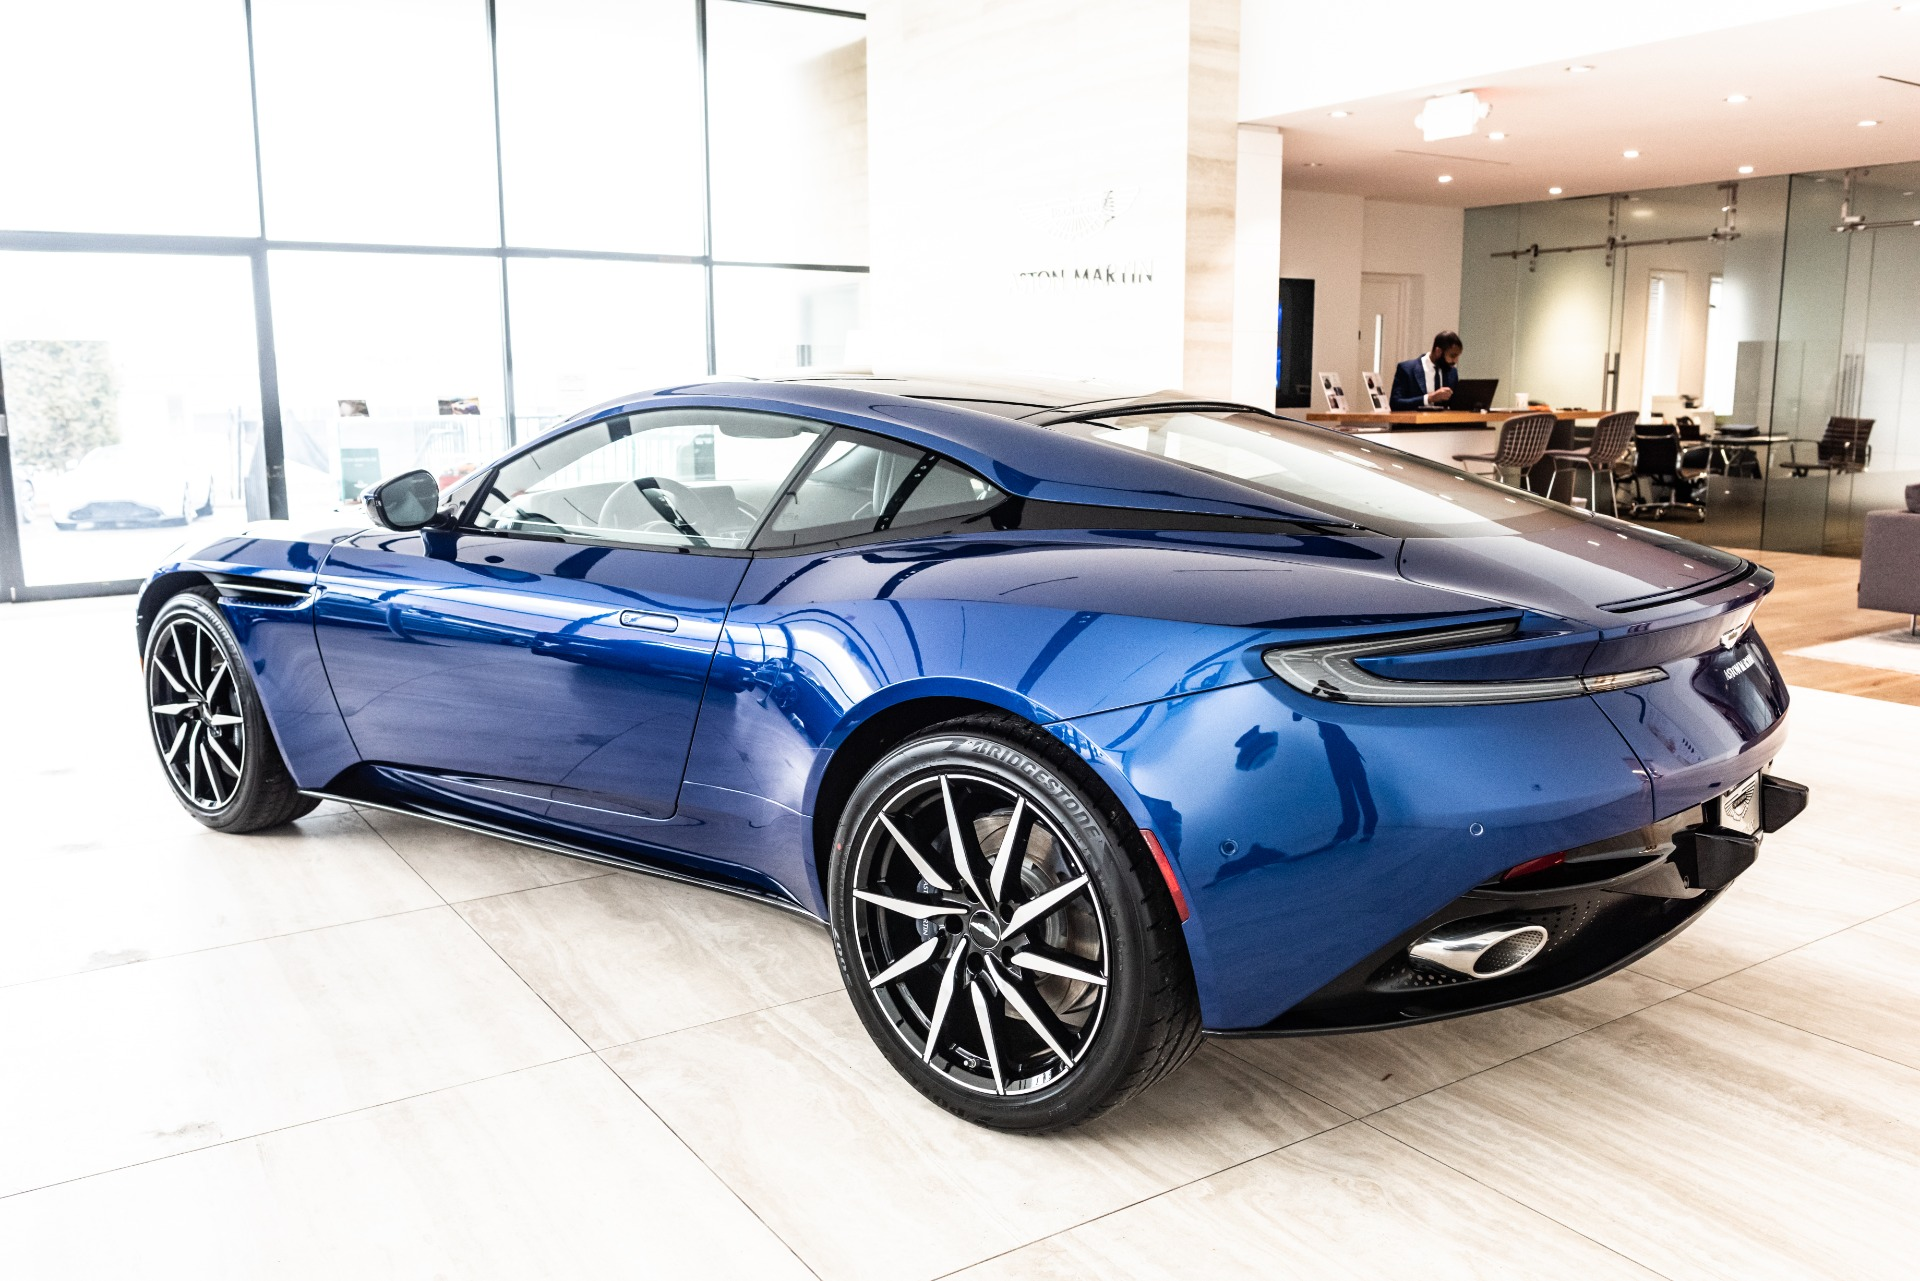 Lease Specials Near Me >> 2019 Aston Martin DB11 V8 Stock # 9NL07380 for sale near ...